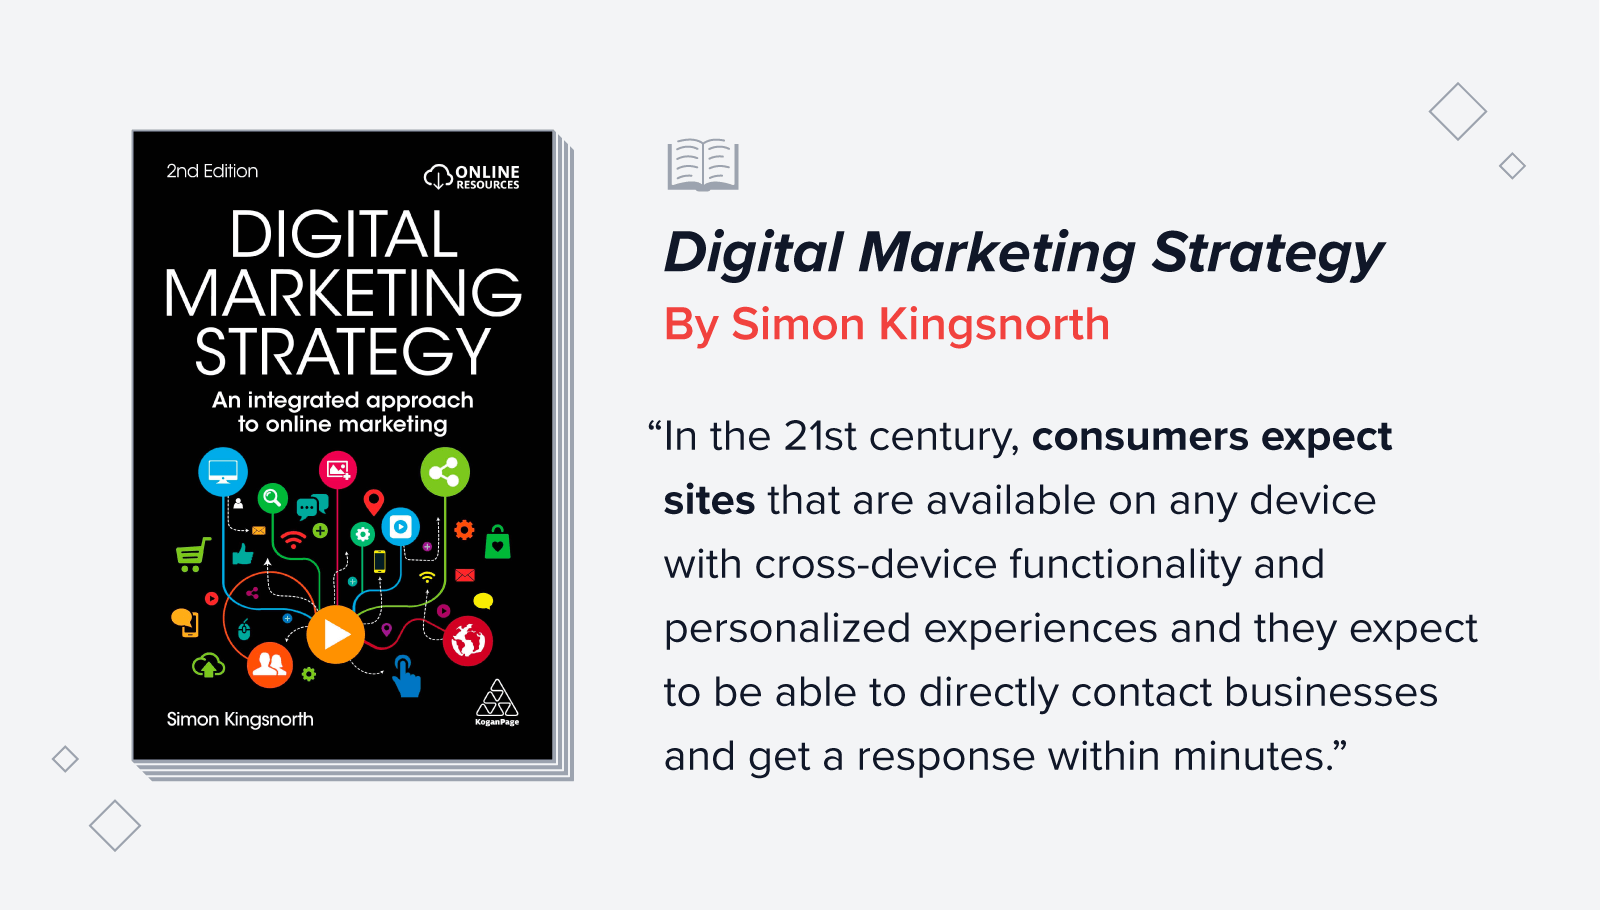 Digital marketing strategy quote